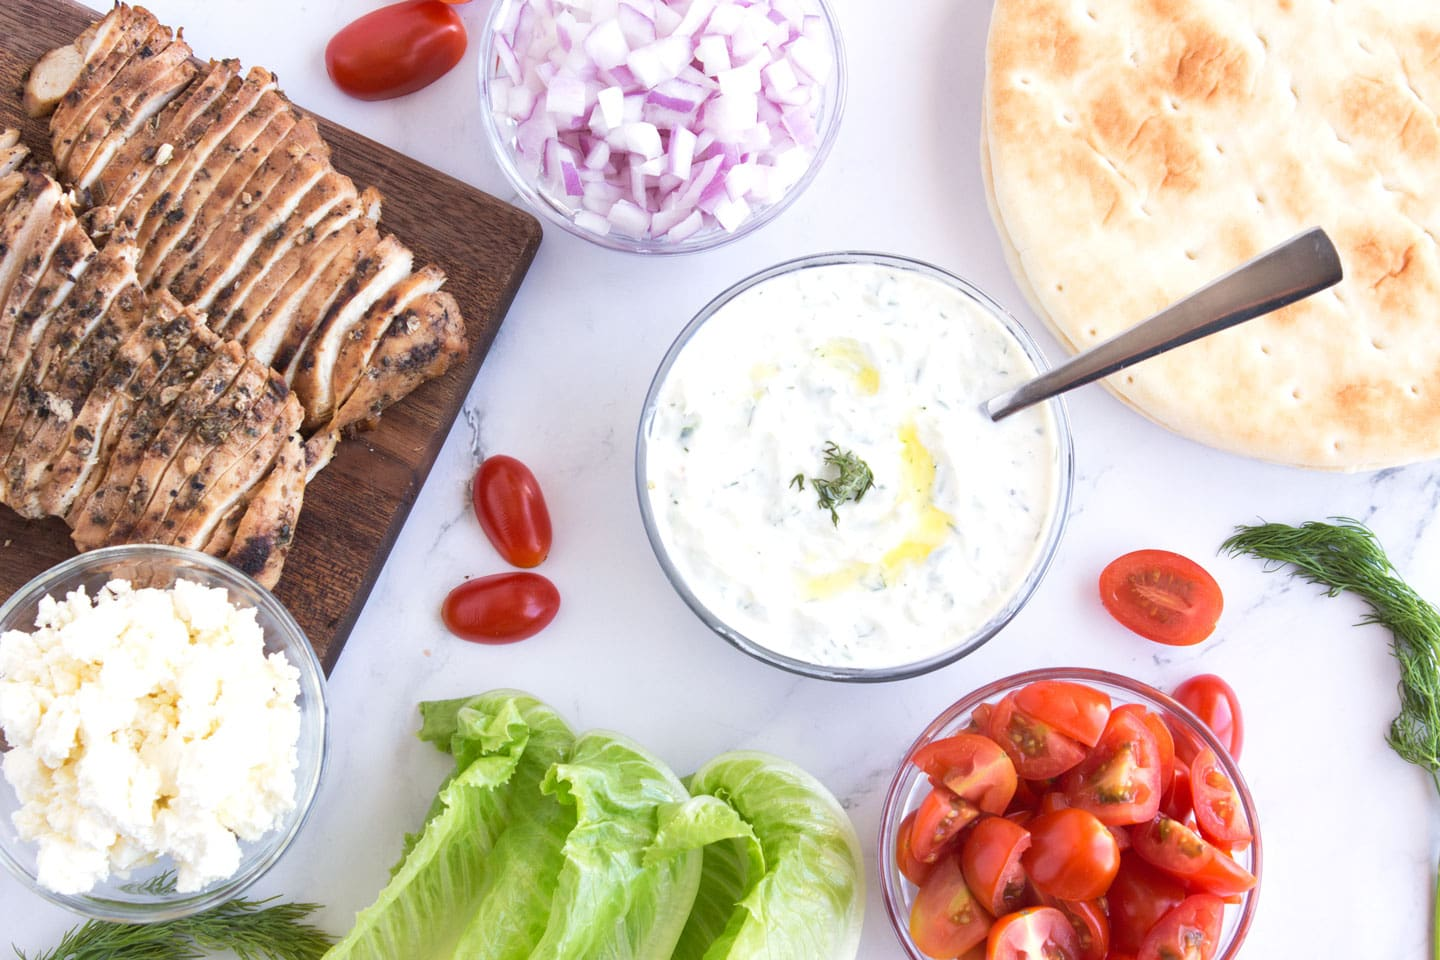 Ingredients for Grilled Greek Chicken Gyros on a countertop.